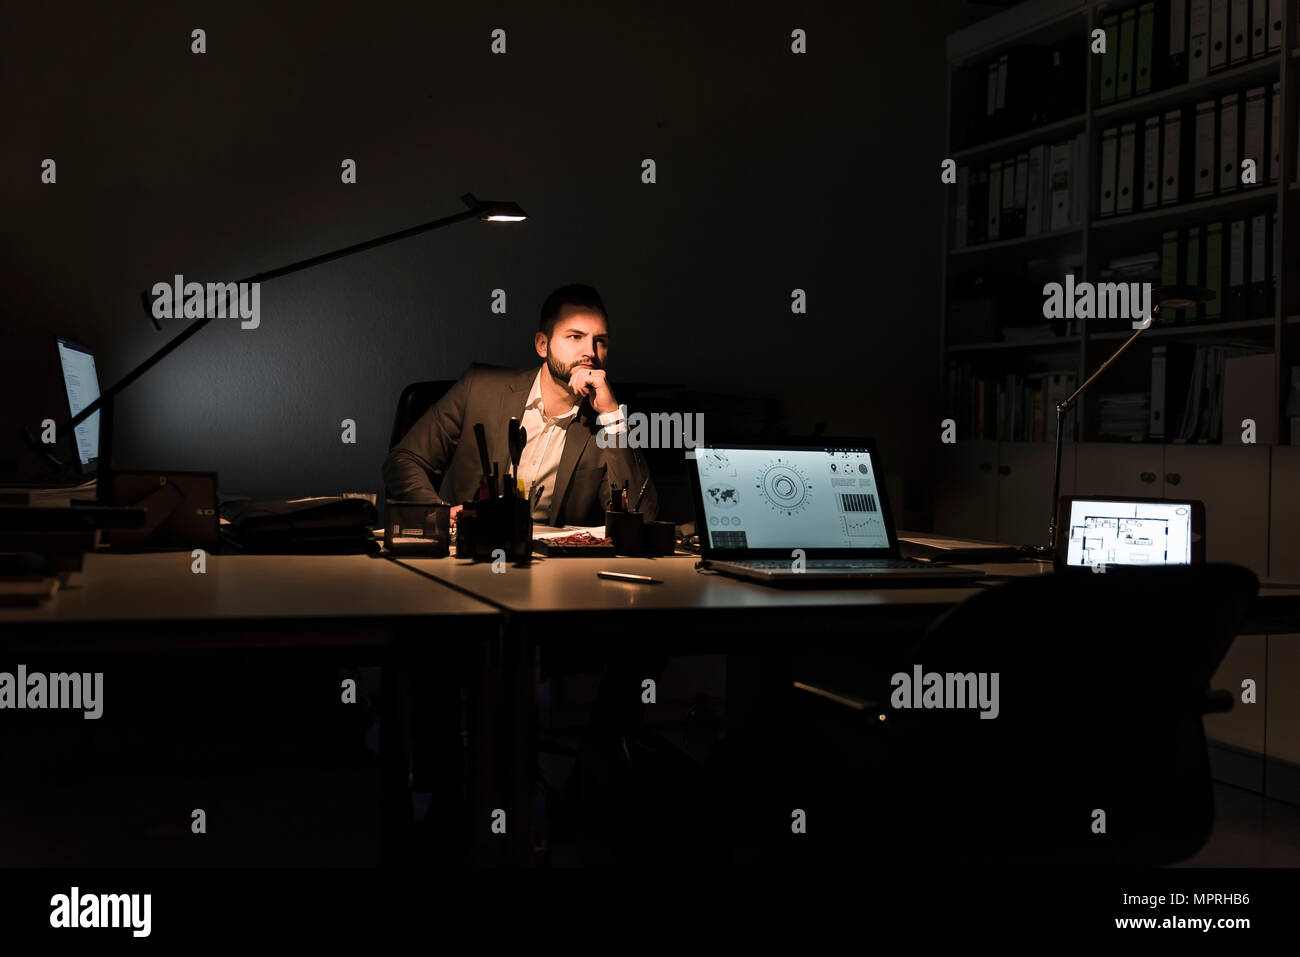 Pensive businessman sitting at desk in office at night - Stock Image